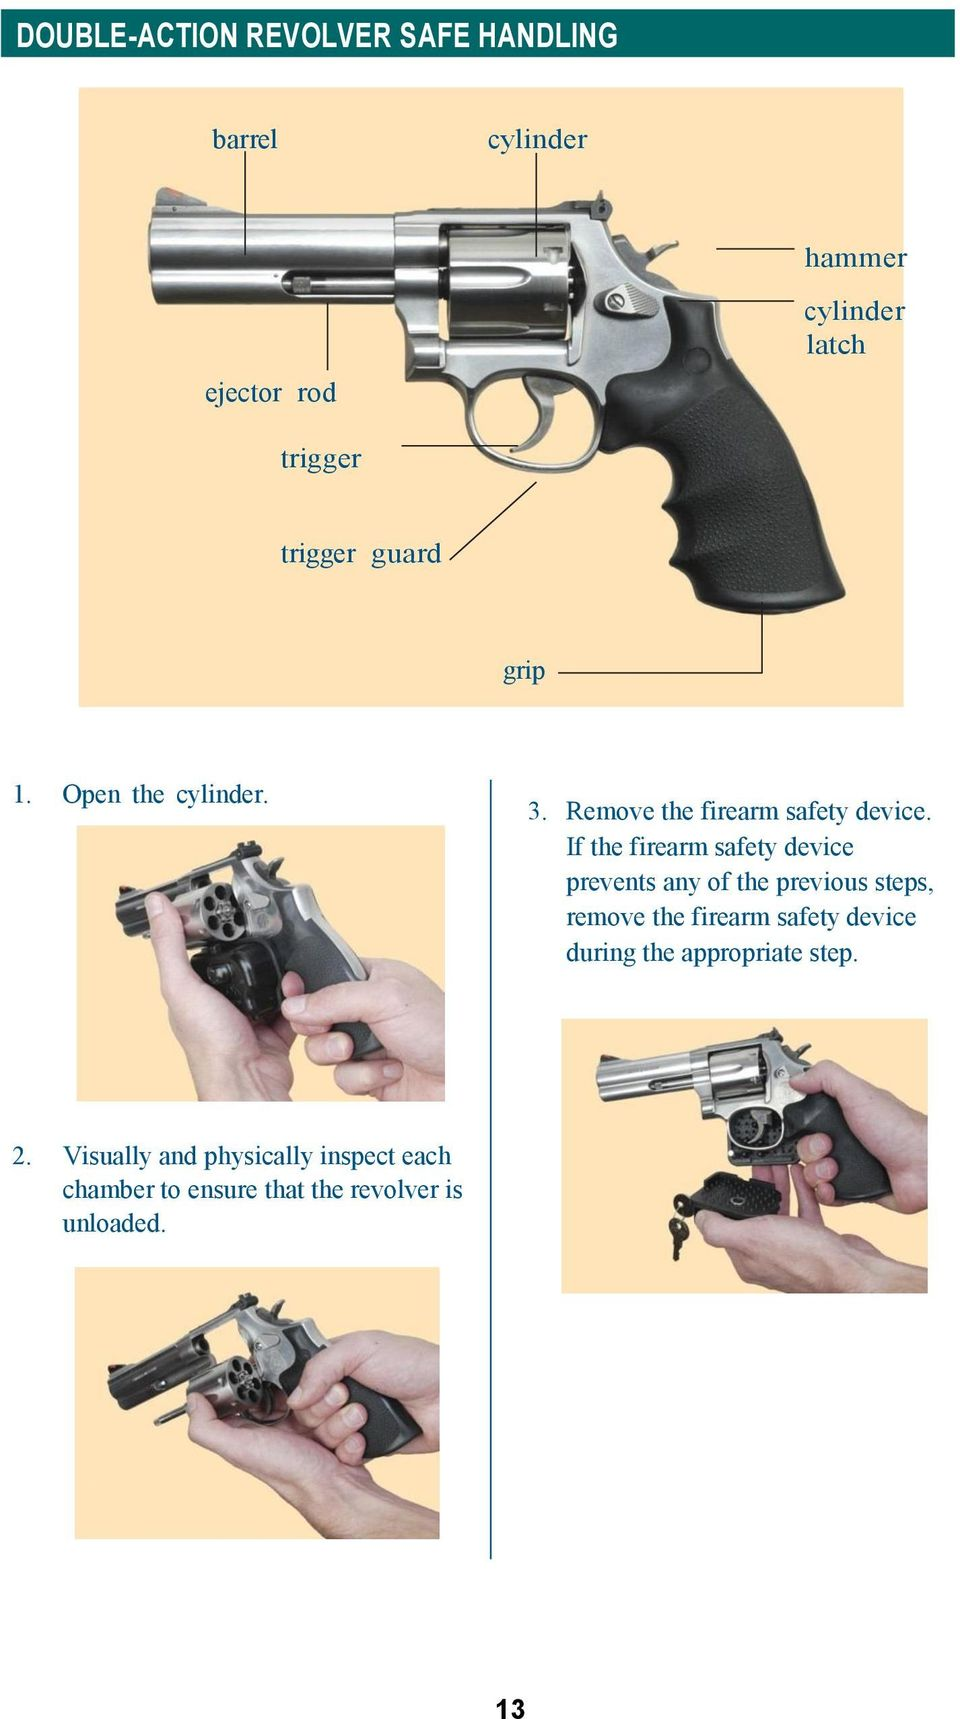 If the firearm safety device prevents any of the previous steps, remove the firearm safety device